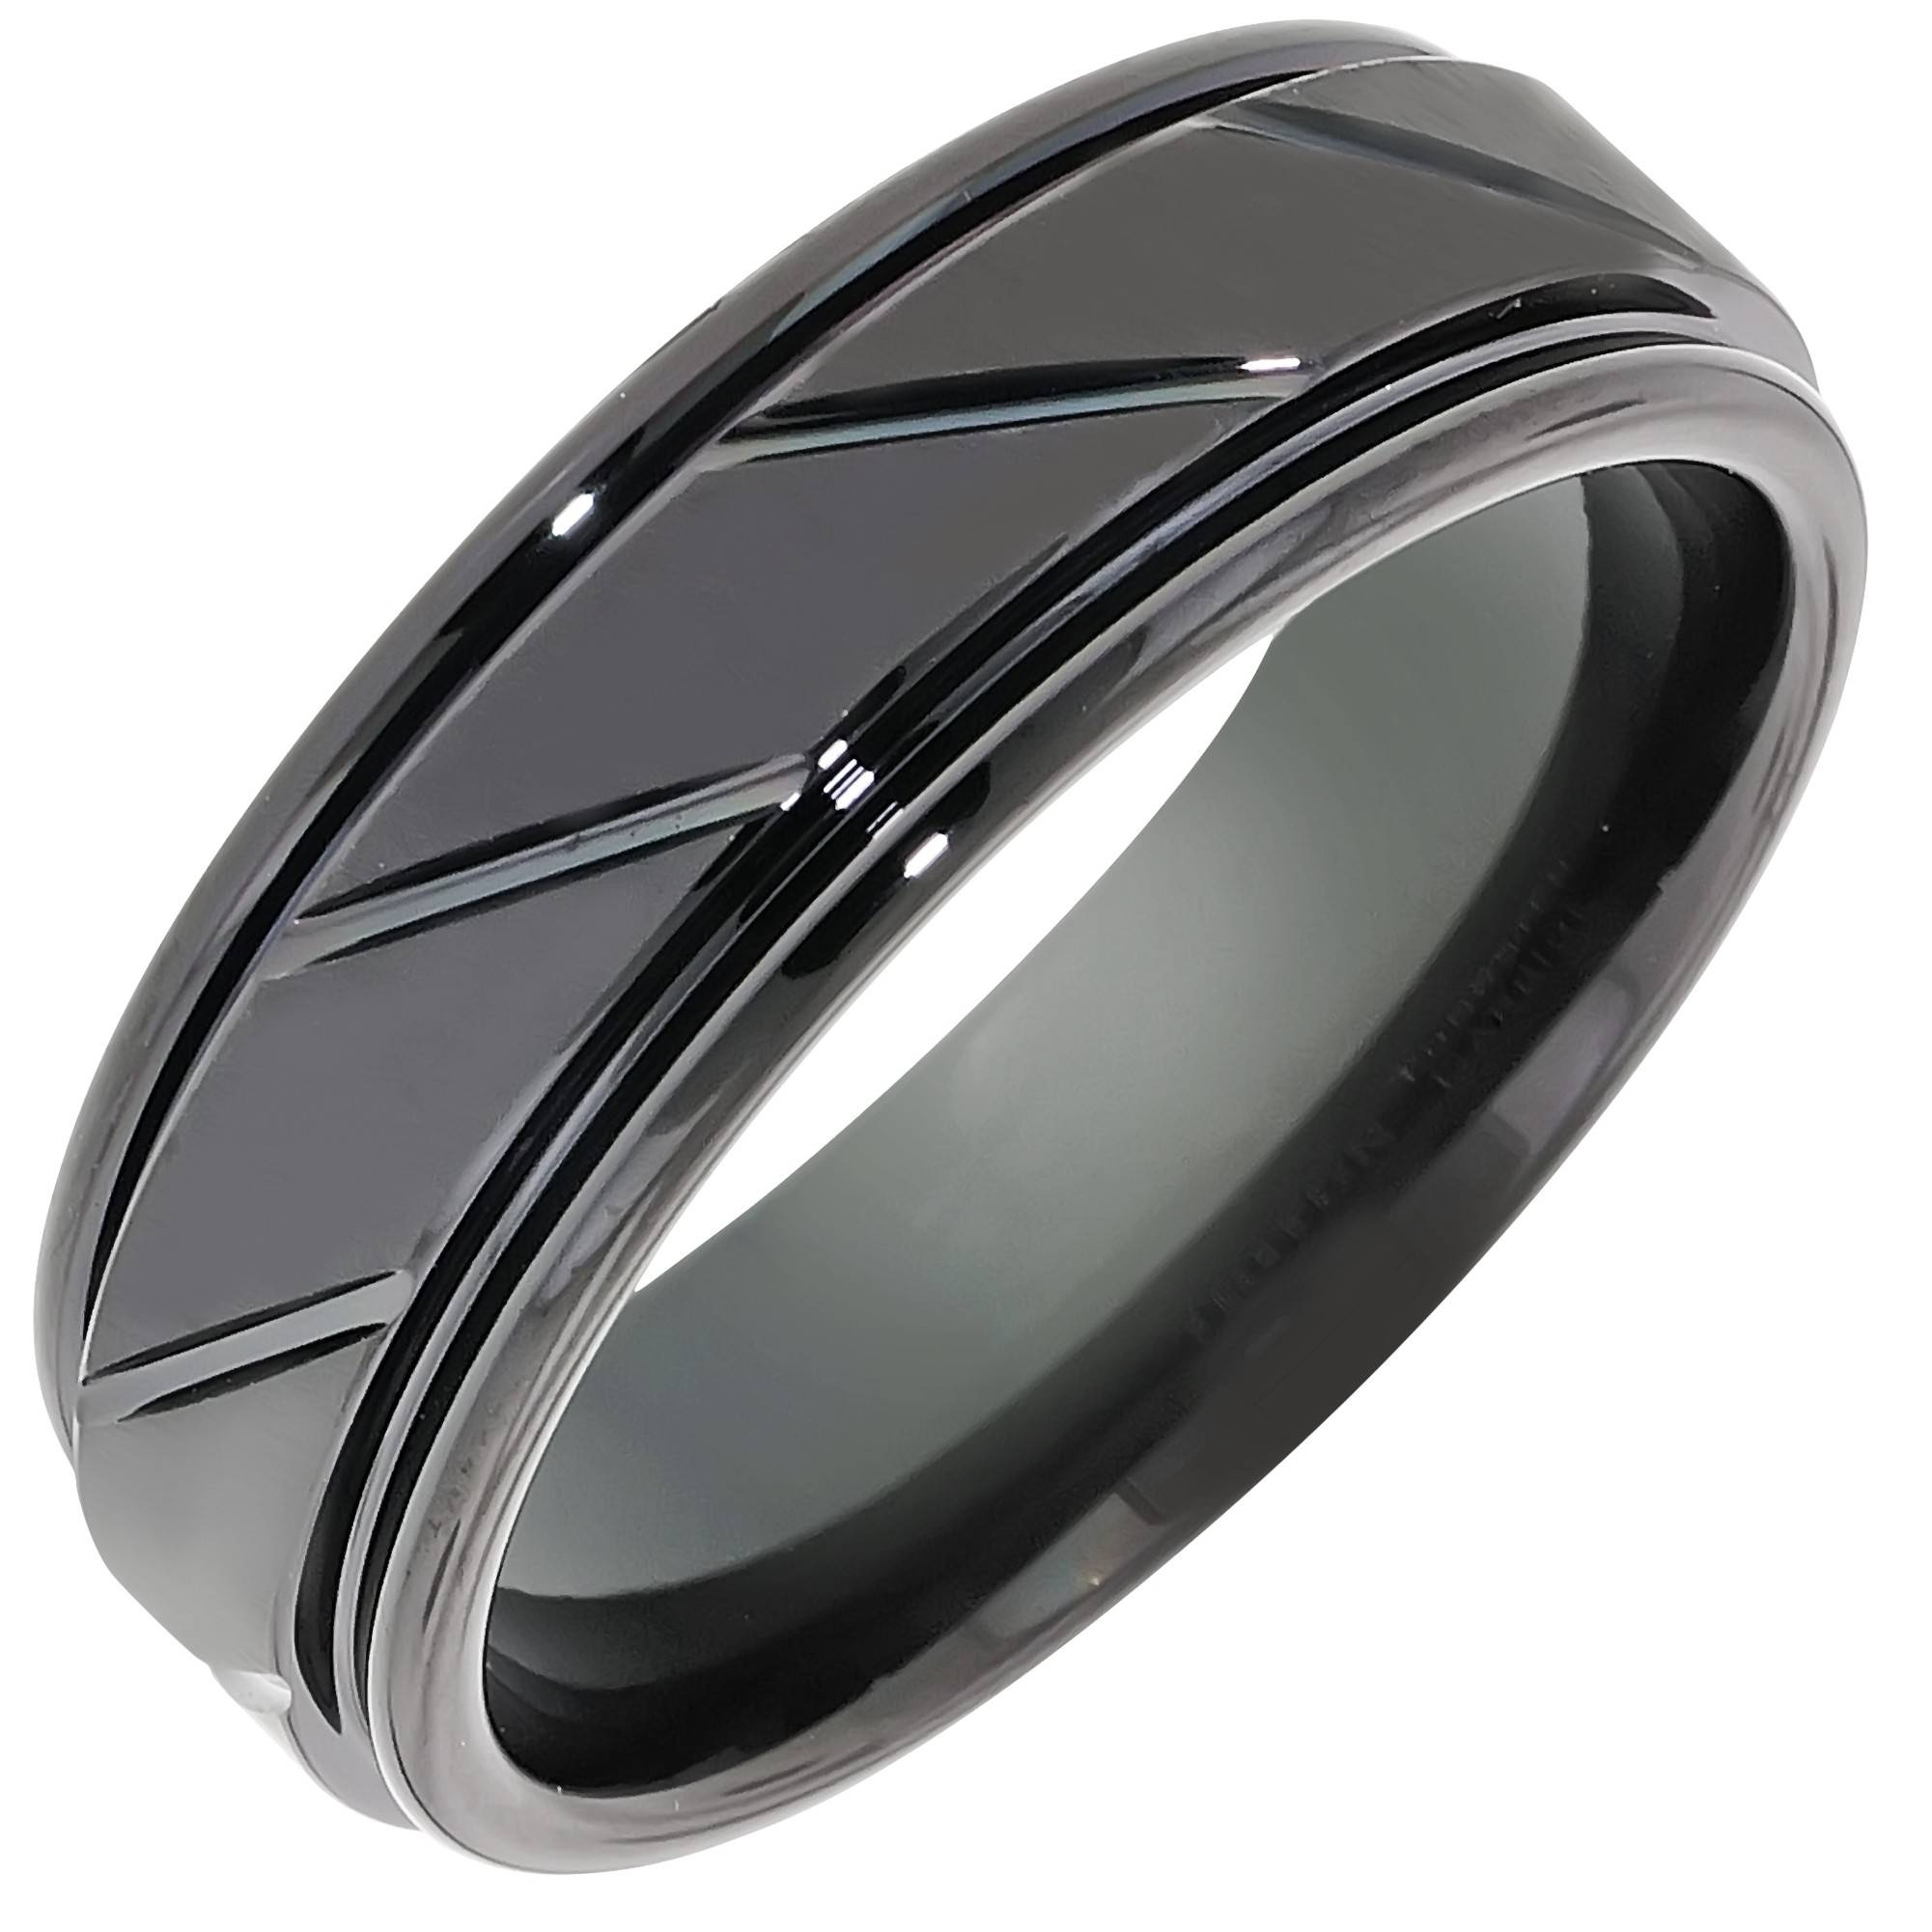 Mens Comfort Fit Wedding Band In Black Tungsten (7Mm) Pertaining To Black Tungsten Wedding Bands (Gallery 7 of 15)